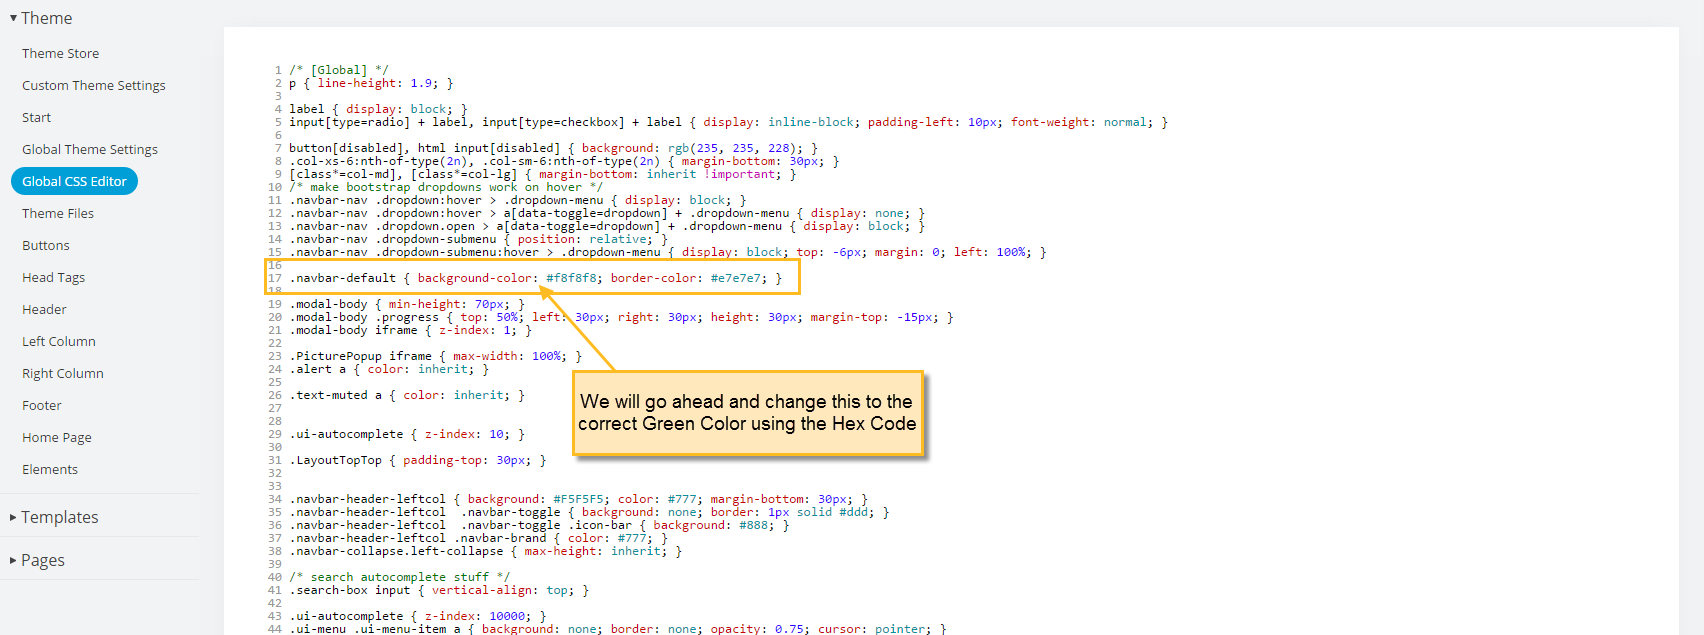 How to find the correct CSS class for editing – Knowledge Center